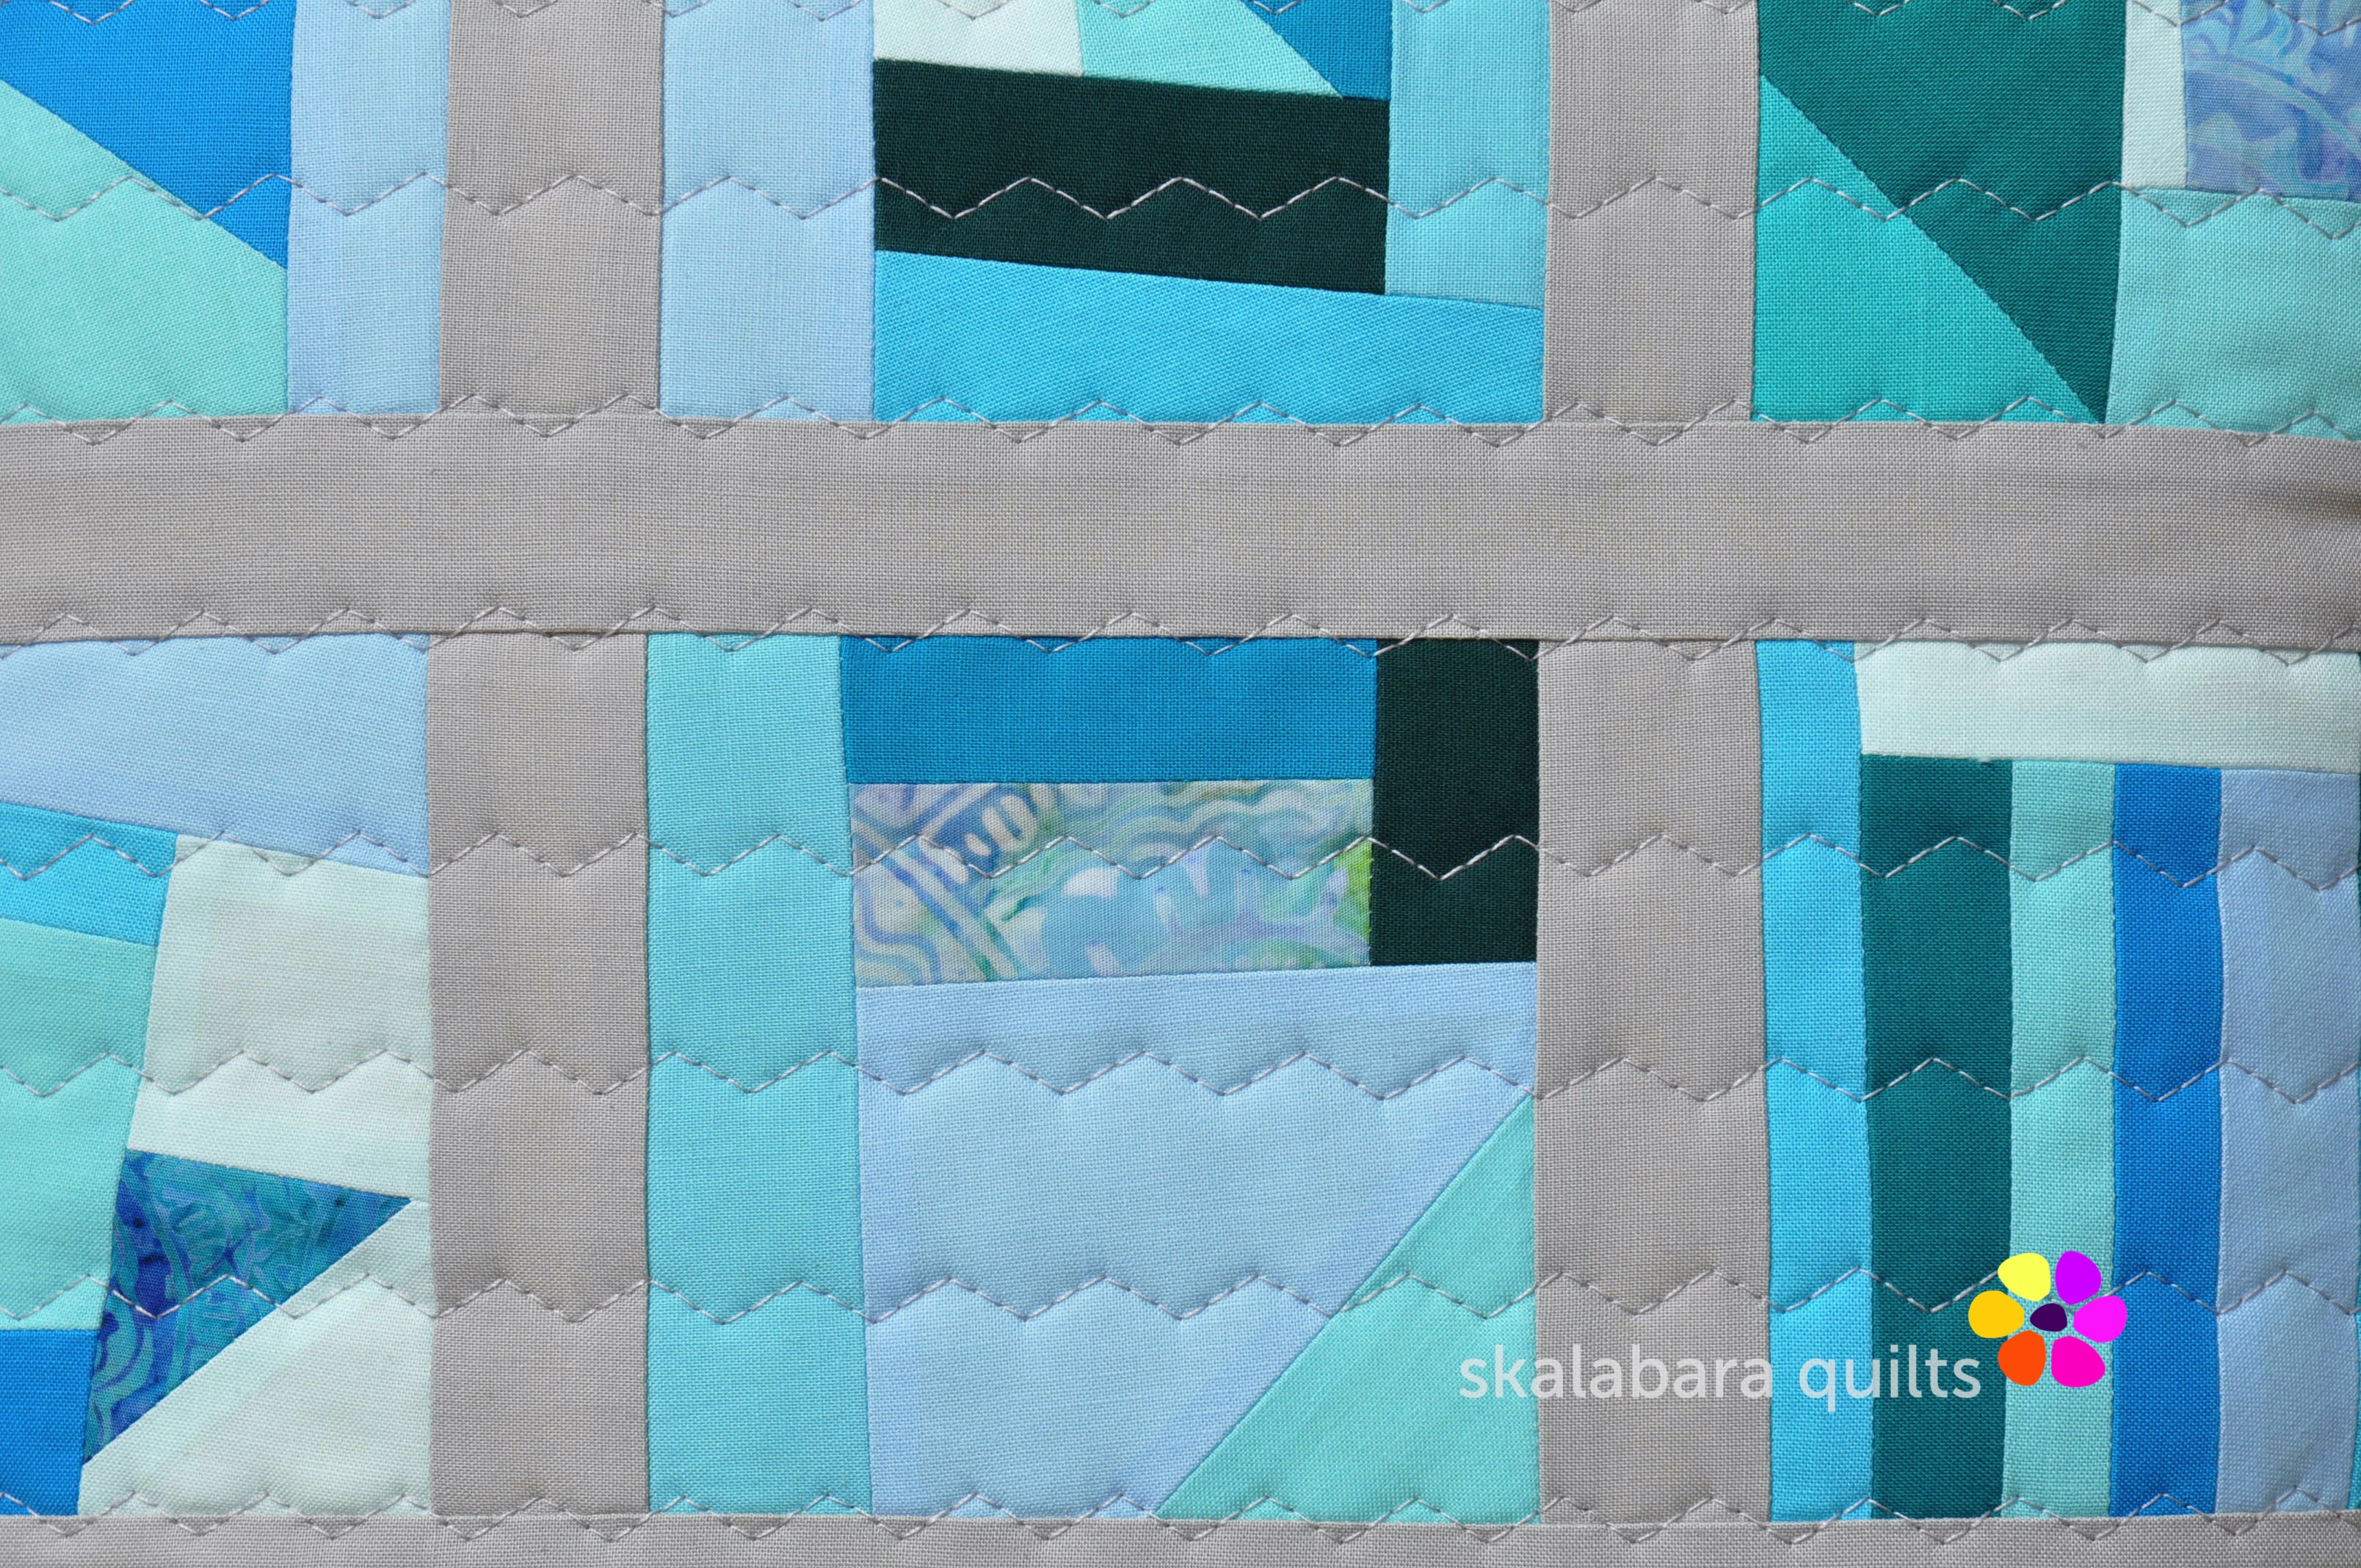 april turquoise cushion detail - skalabara quilts